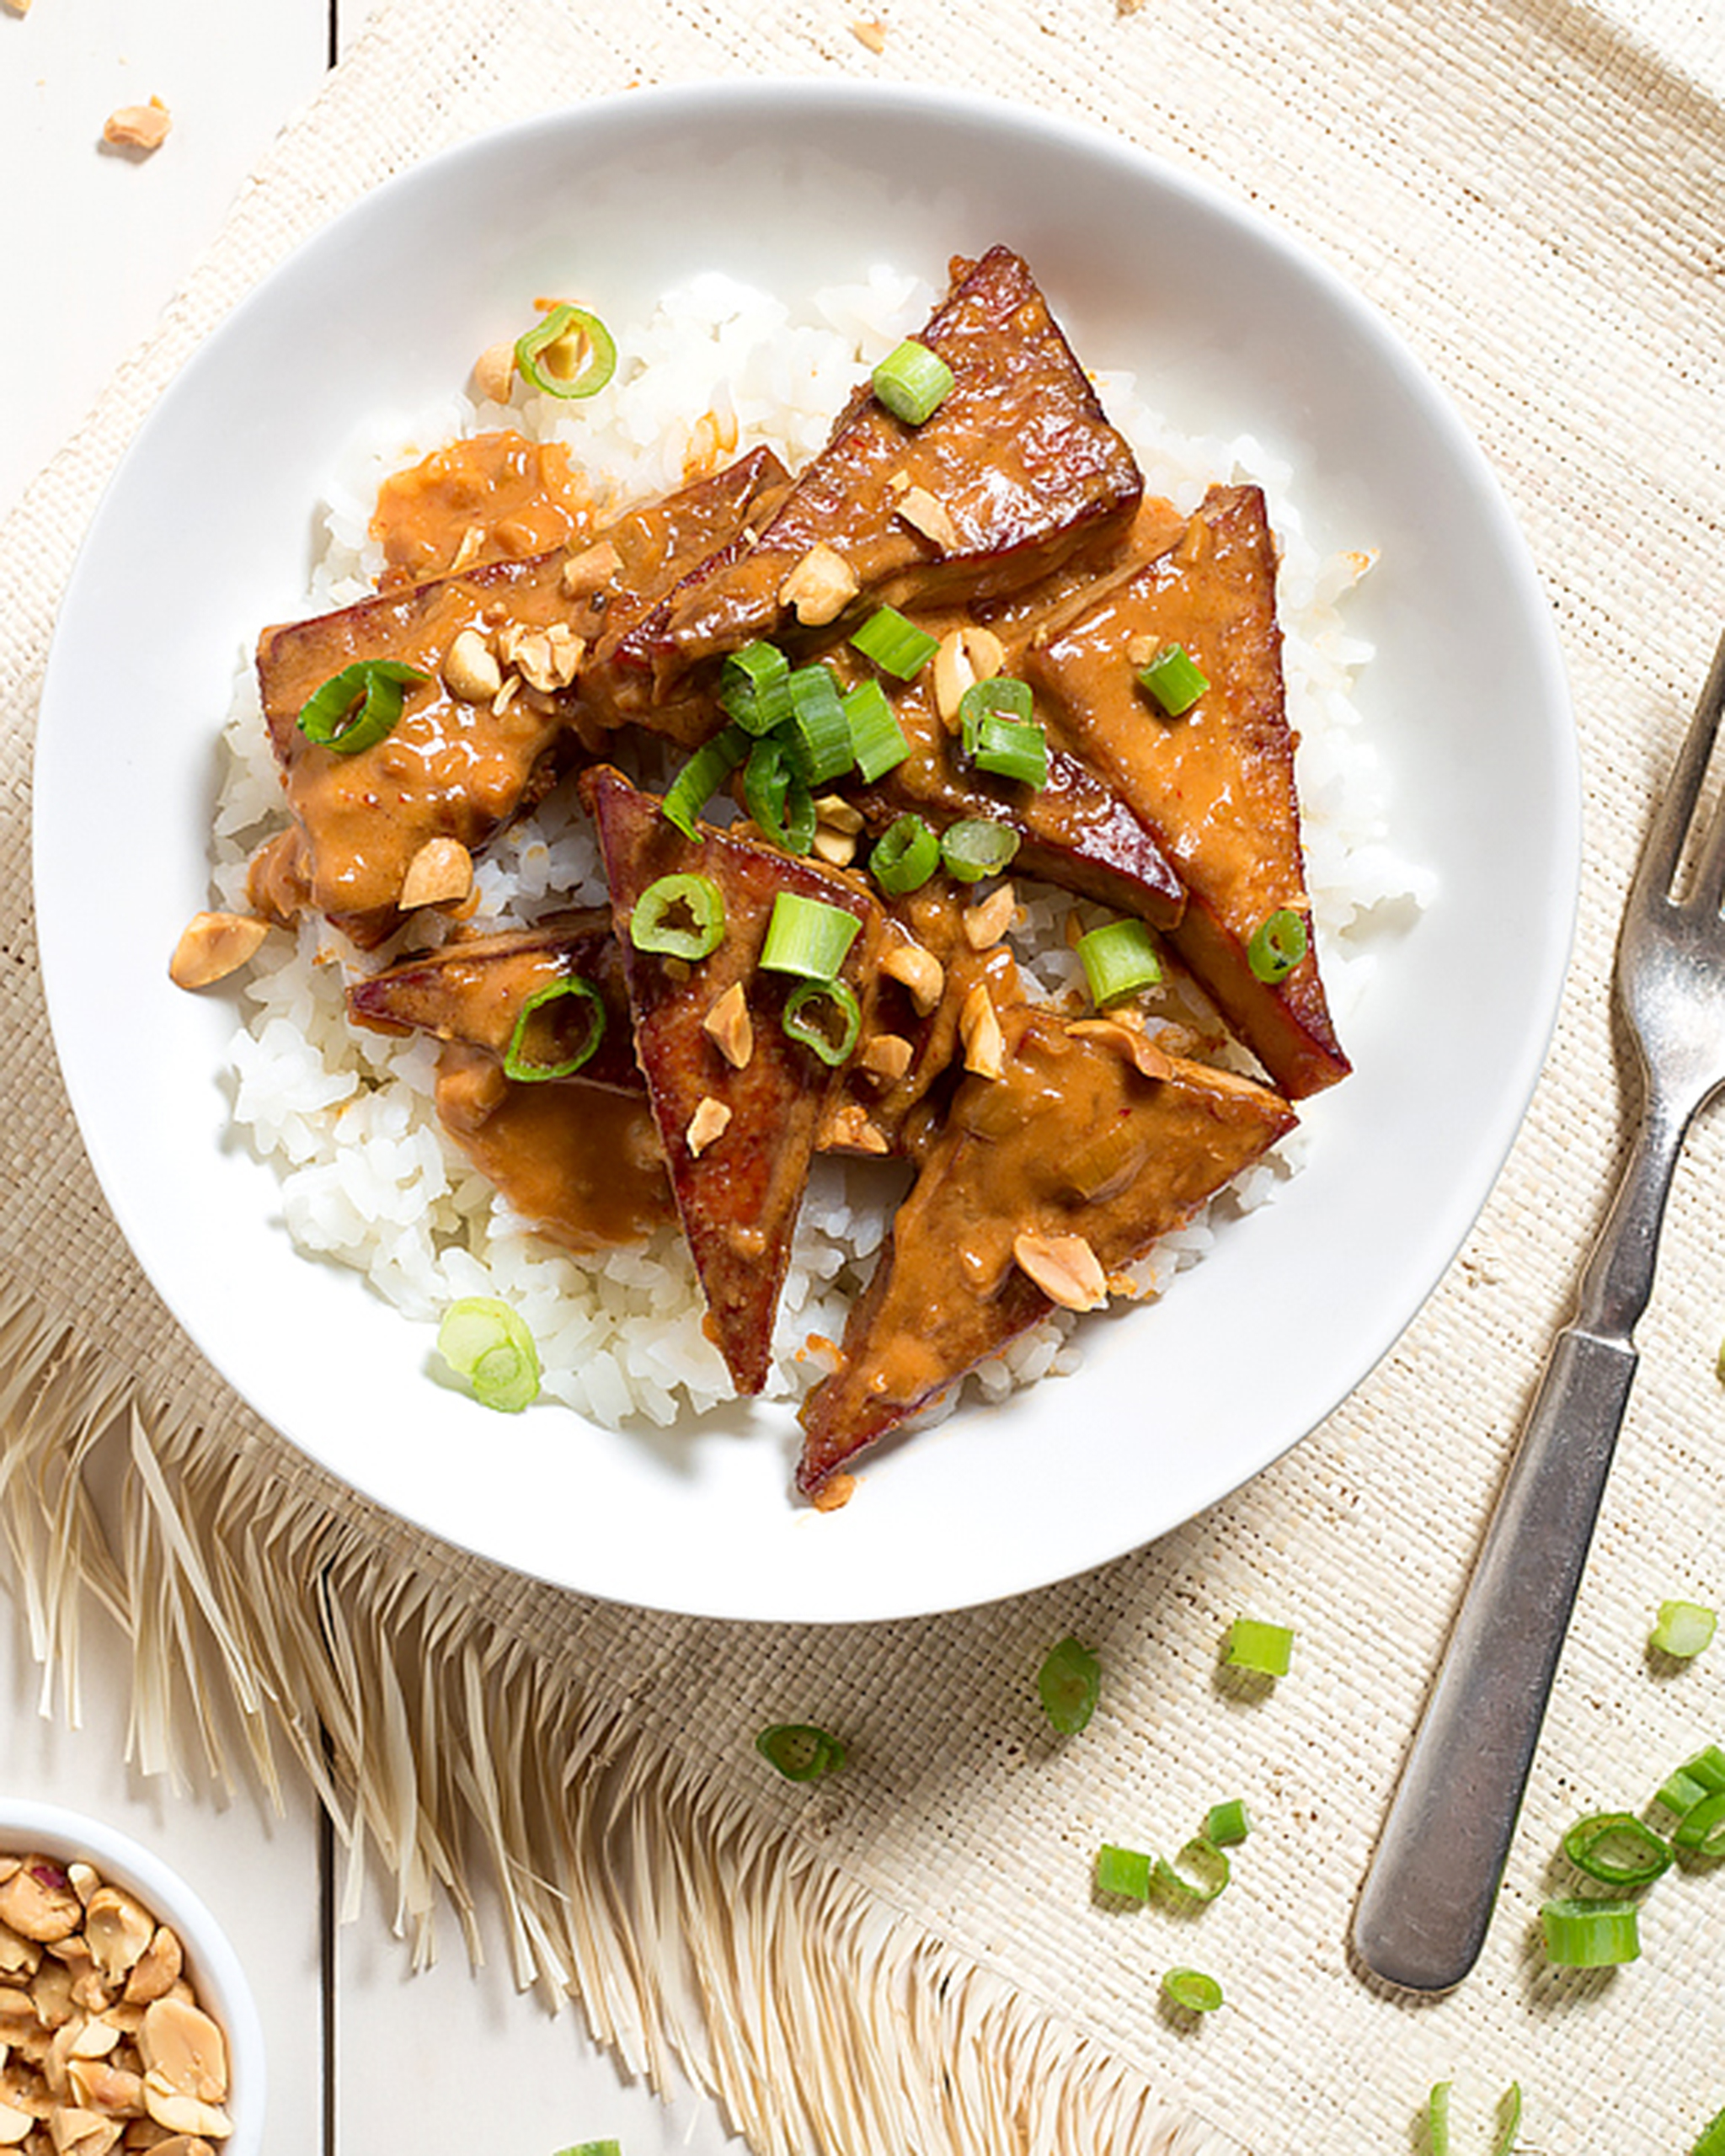 A photo of a spicy peanut butter tofu on top of white rice garnished with scallions.